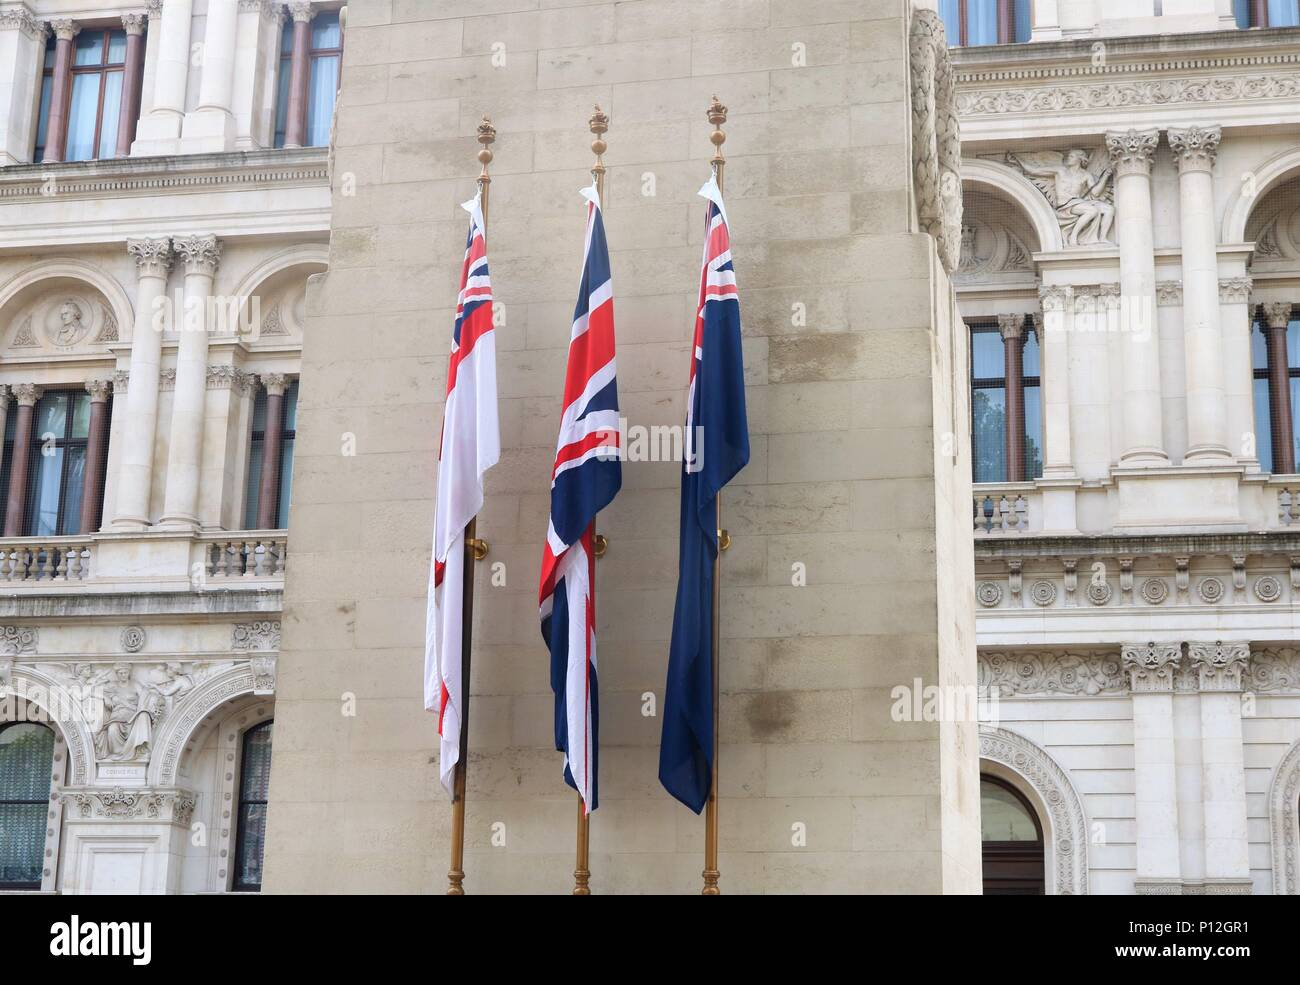 The White Ensign, Union Flag, and Blue Ensign Flags on the Cenotaph War Memorial at Whitehall, London, UK - Stock Image